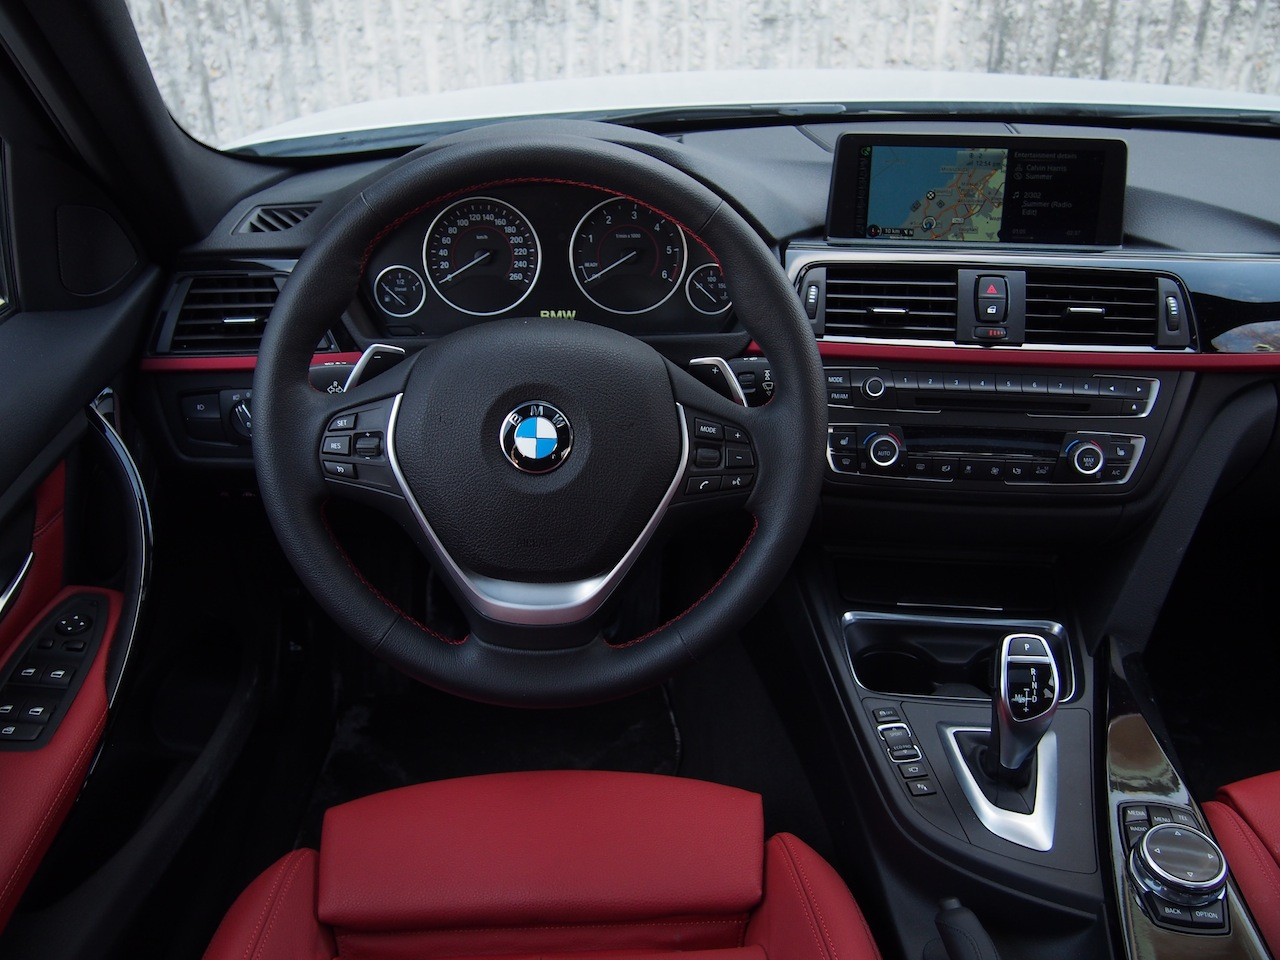 2014 bmw 328d xdrive photo gallery cars photos test drives and reviews canadian auto review. Black Bedroom Furniture Sets. Home Design Ideas